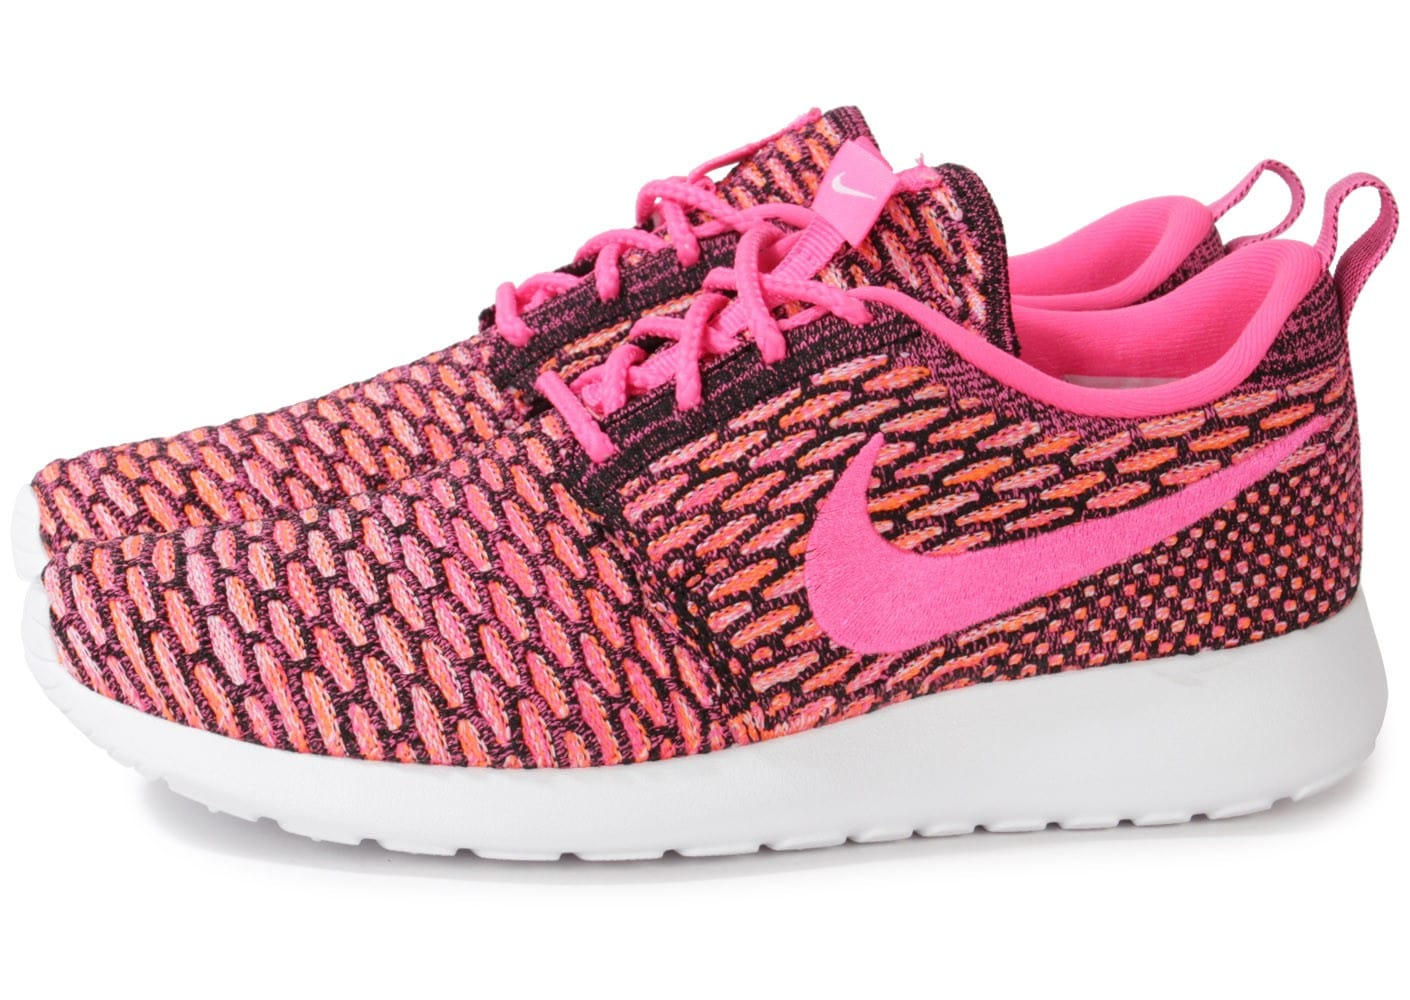 mkxya Cliquez pour zoomer Chaussures Nike ROSHE RUN FLYKNIT ROSE vue extérieure